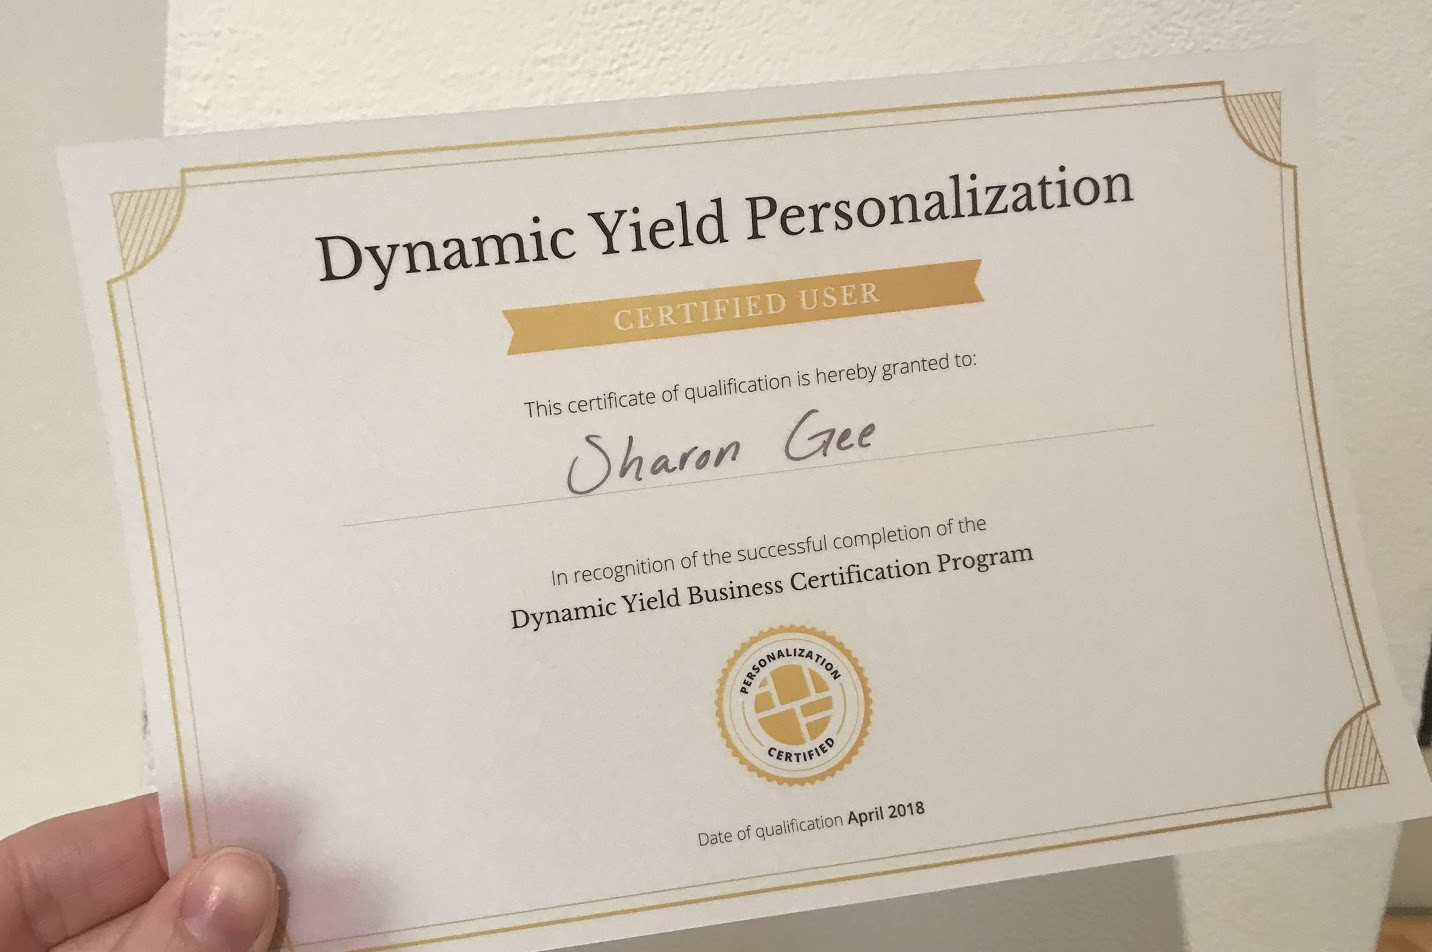 Dynamic Yield Personalization Certification